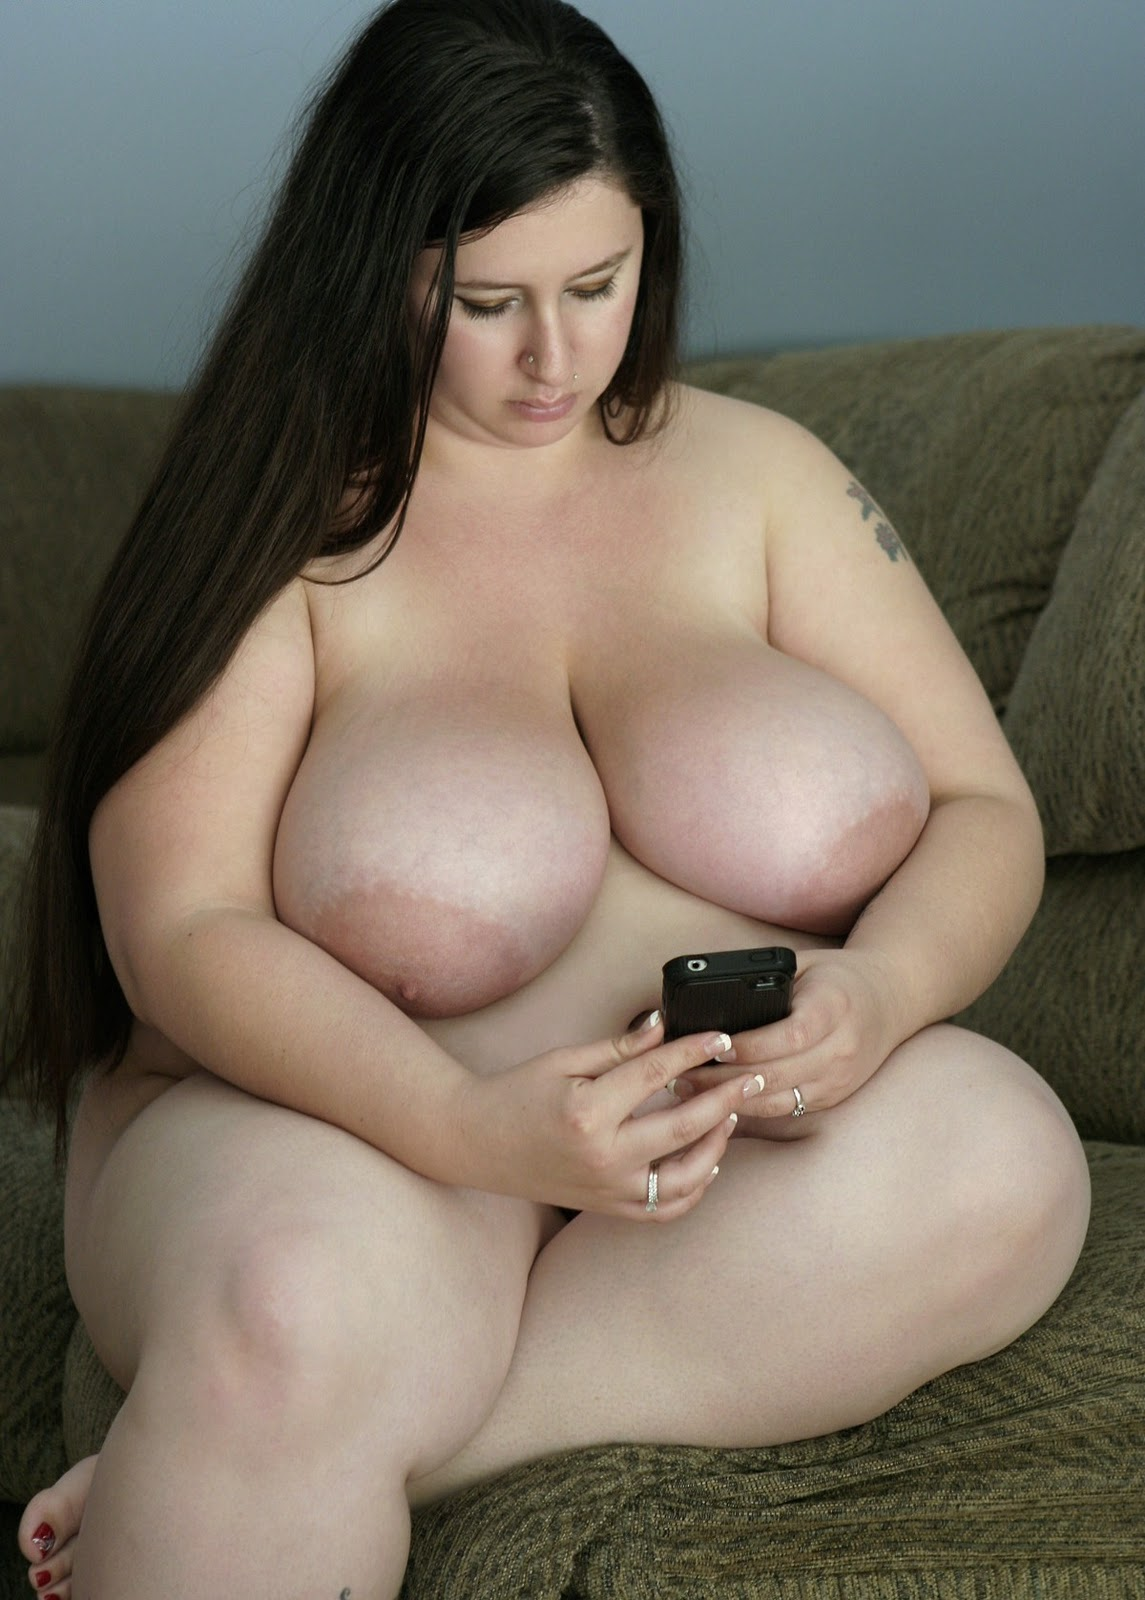 Nude very fat women, Sex foto video